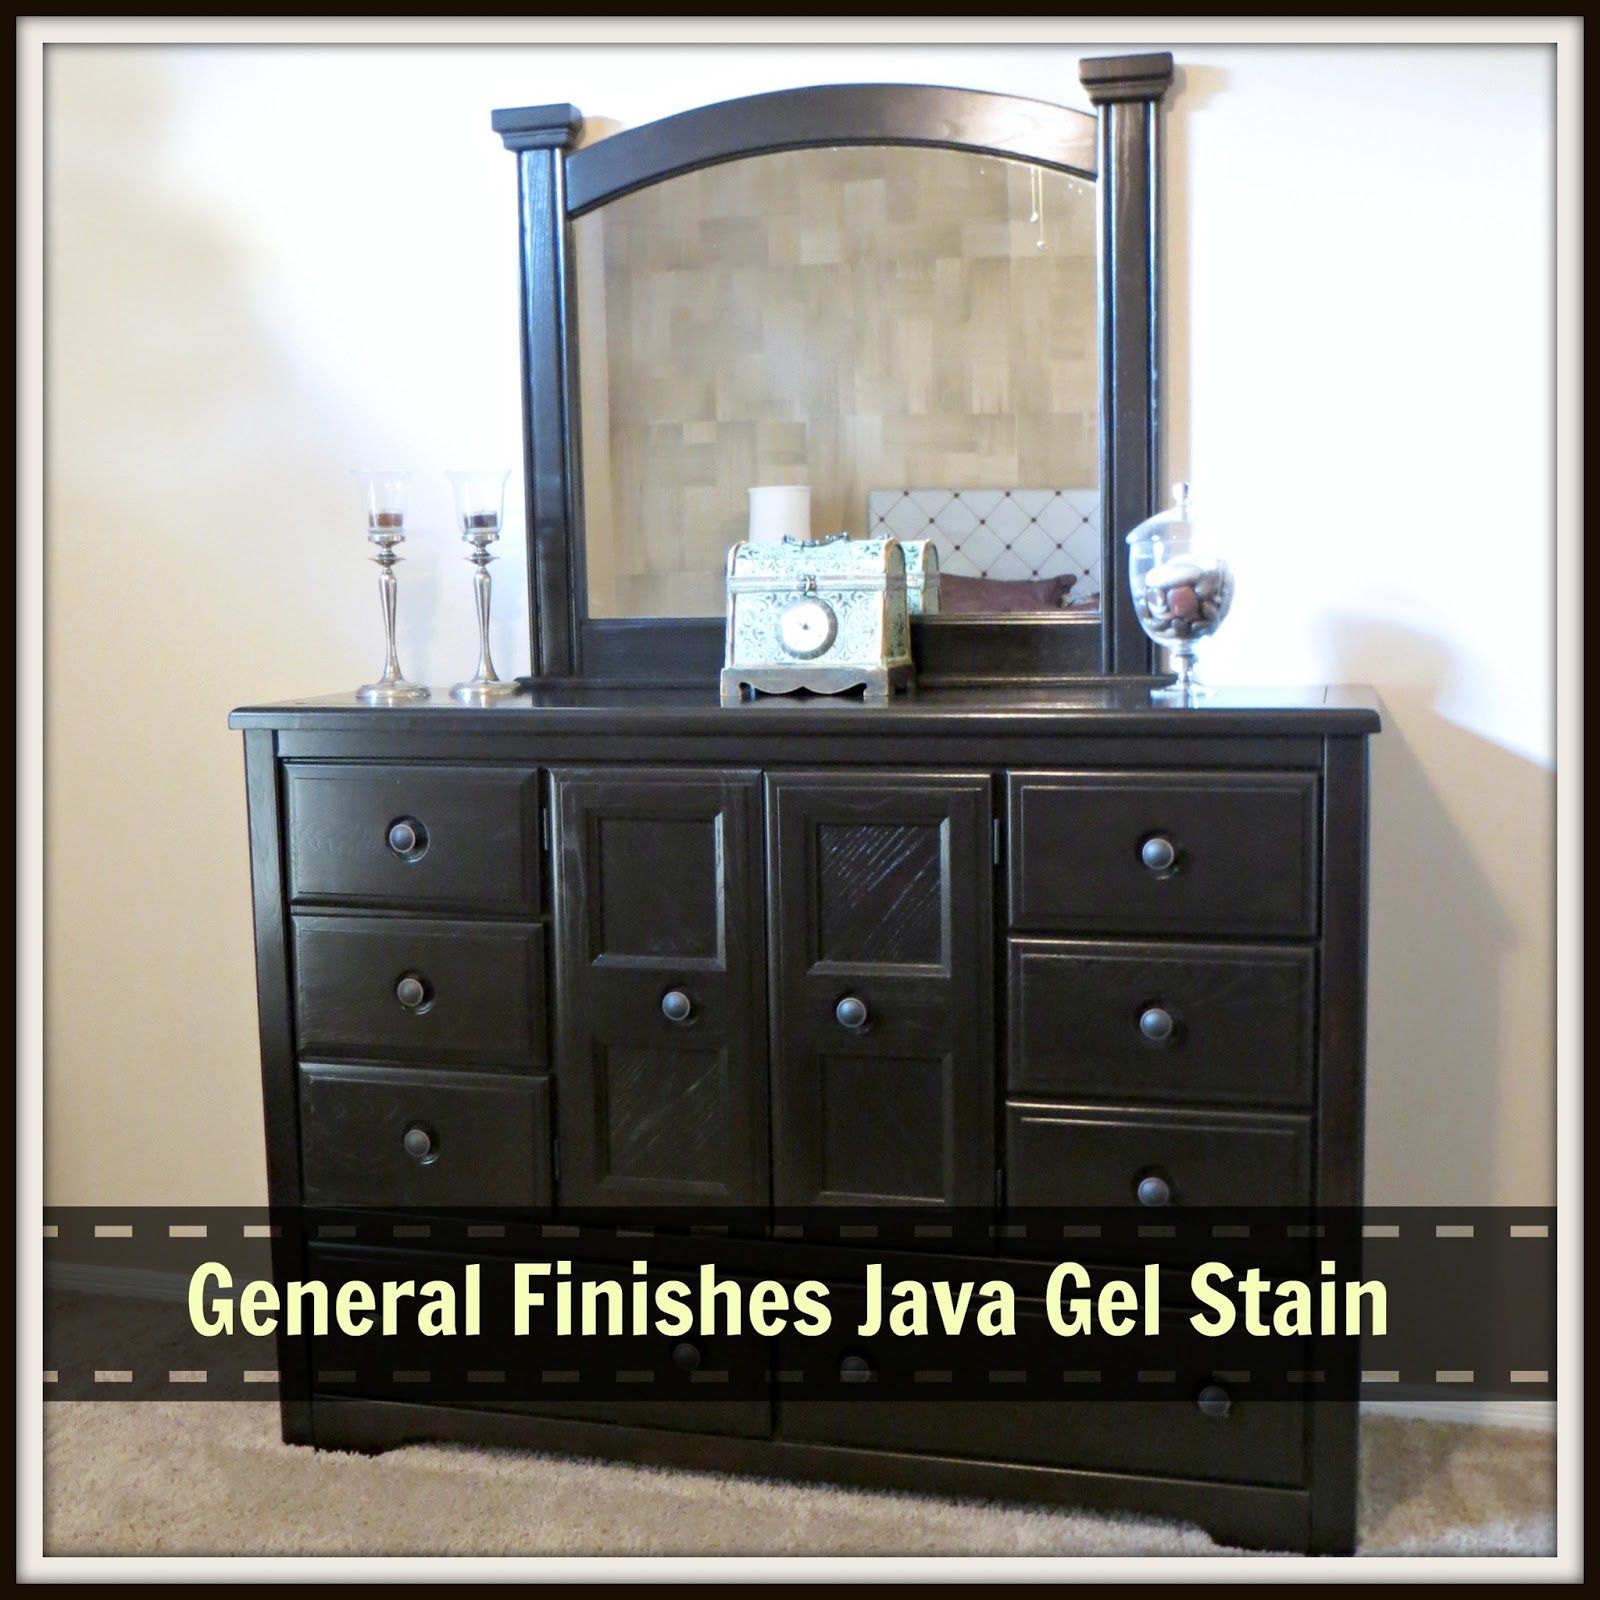 bedroom furniture makeover image19. General Finishes Gel Stain, Before \u0026 After Bedroom Furniture Makeover Image19